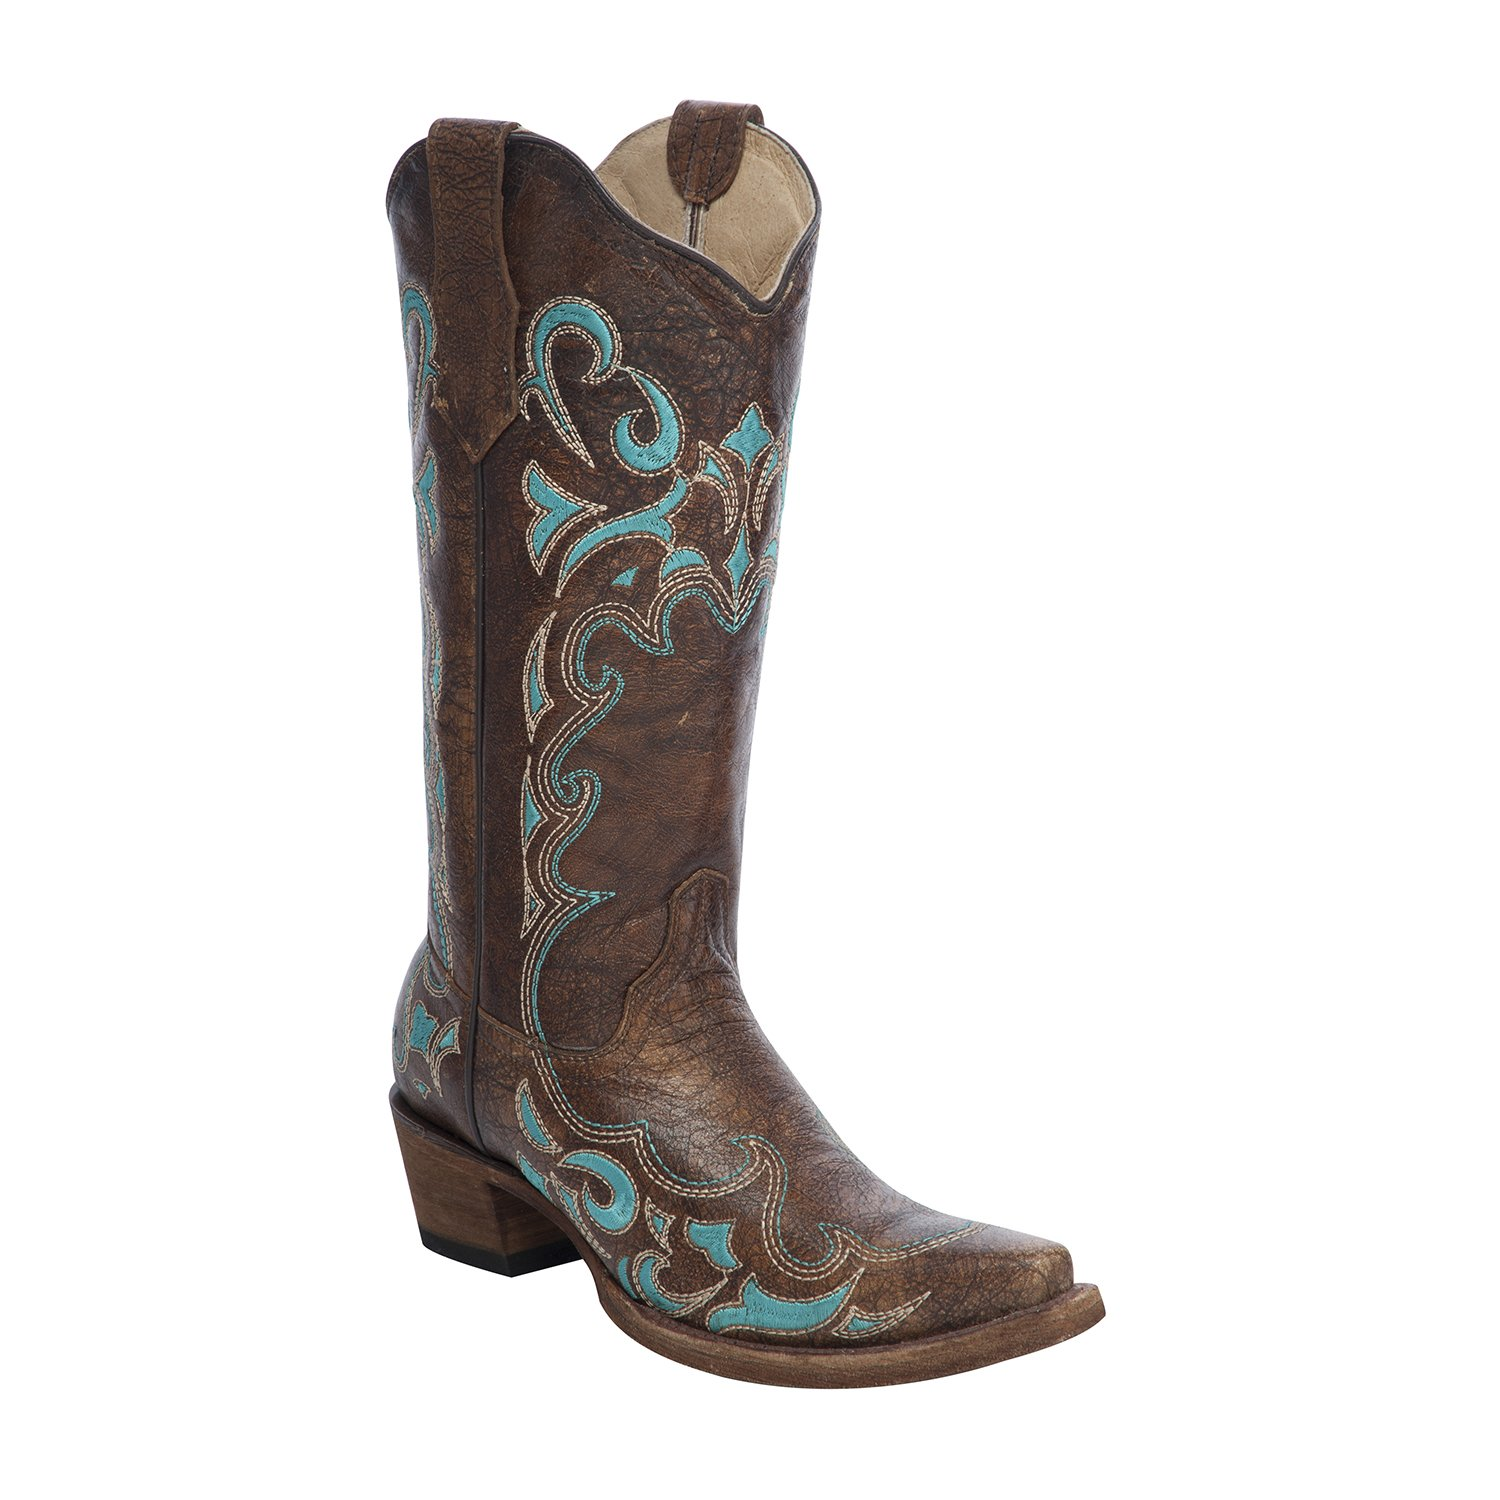 Corral Circle G Women's Turquoise-Embroidered Distressed Brown Leather B(M) Cowgirl Boots B01EN9GWLY 11 B(M) Leather US|Brown 3123f8